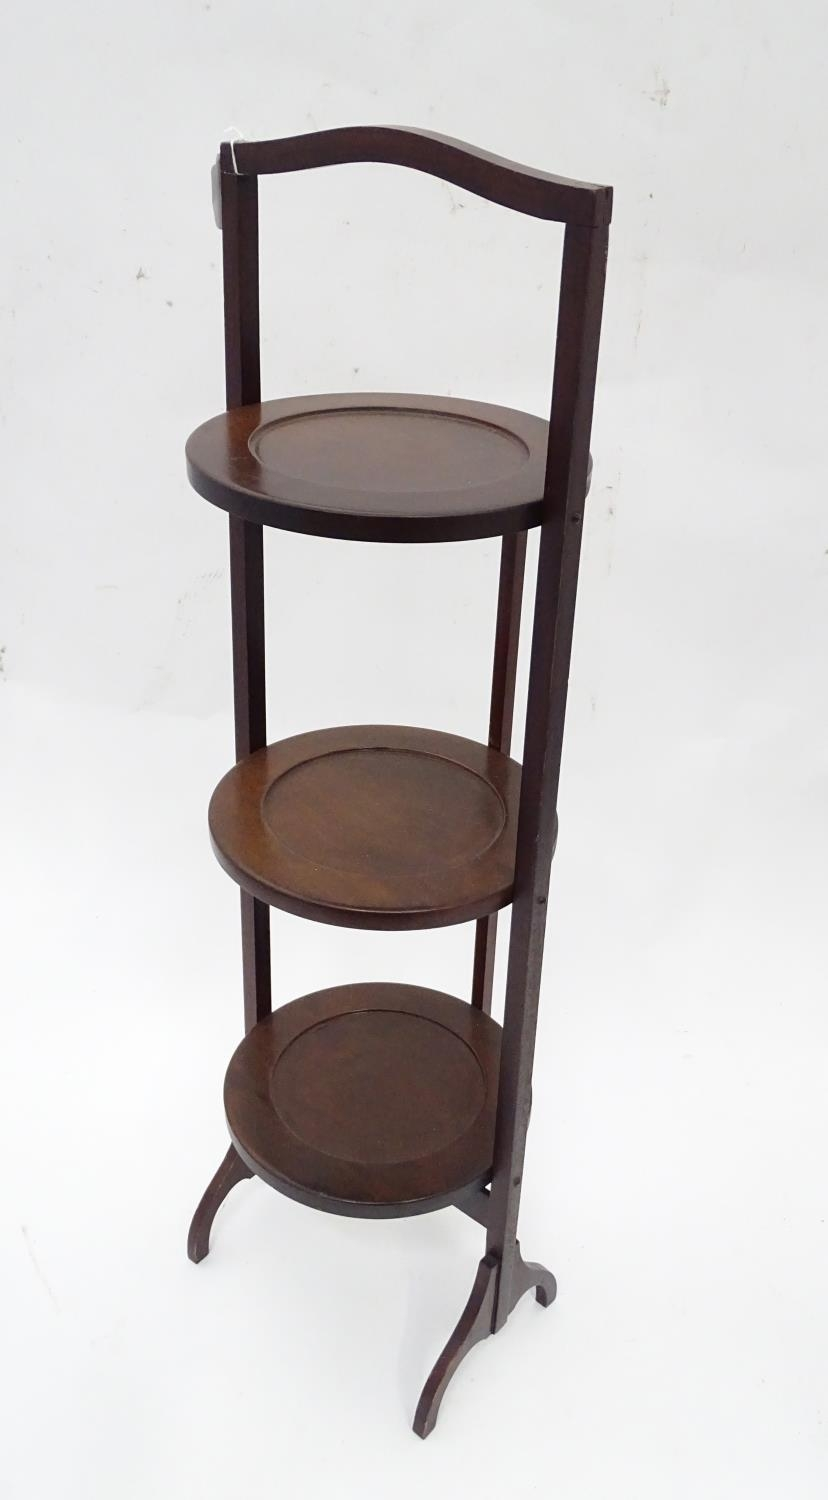 A mahogany folding cake stand with three tiers Please Note - we do not make reference to the